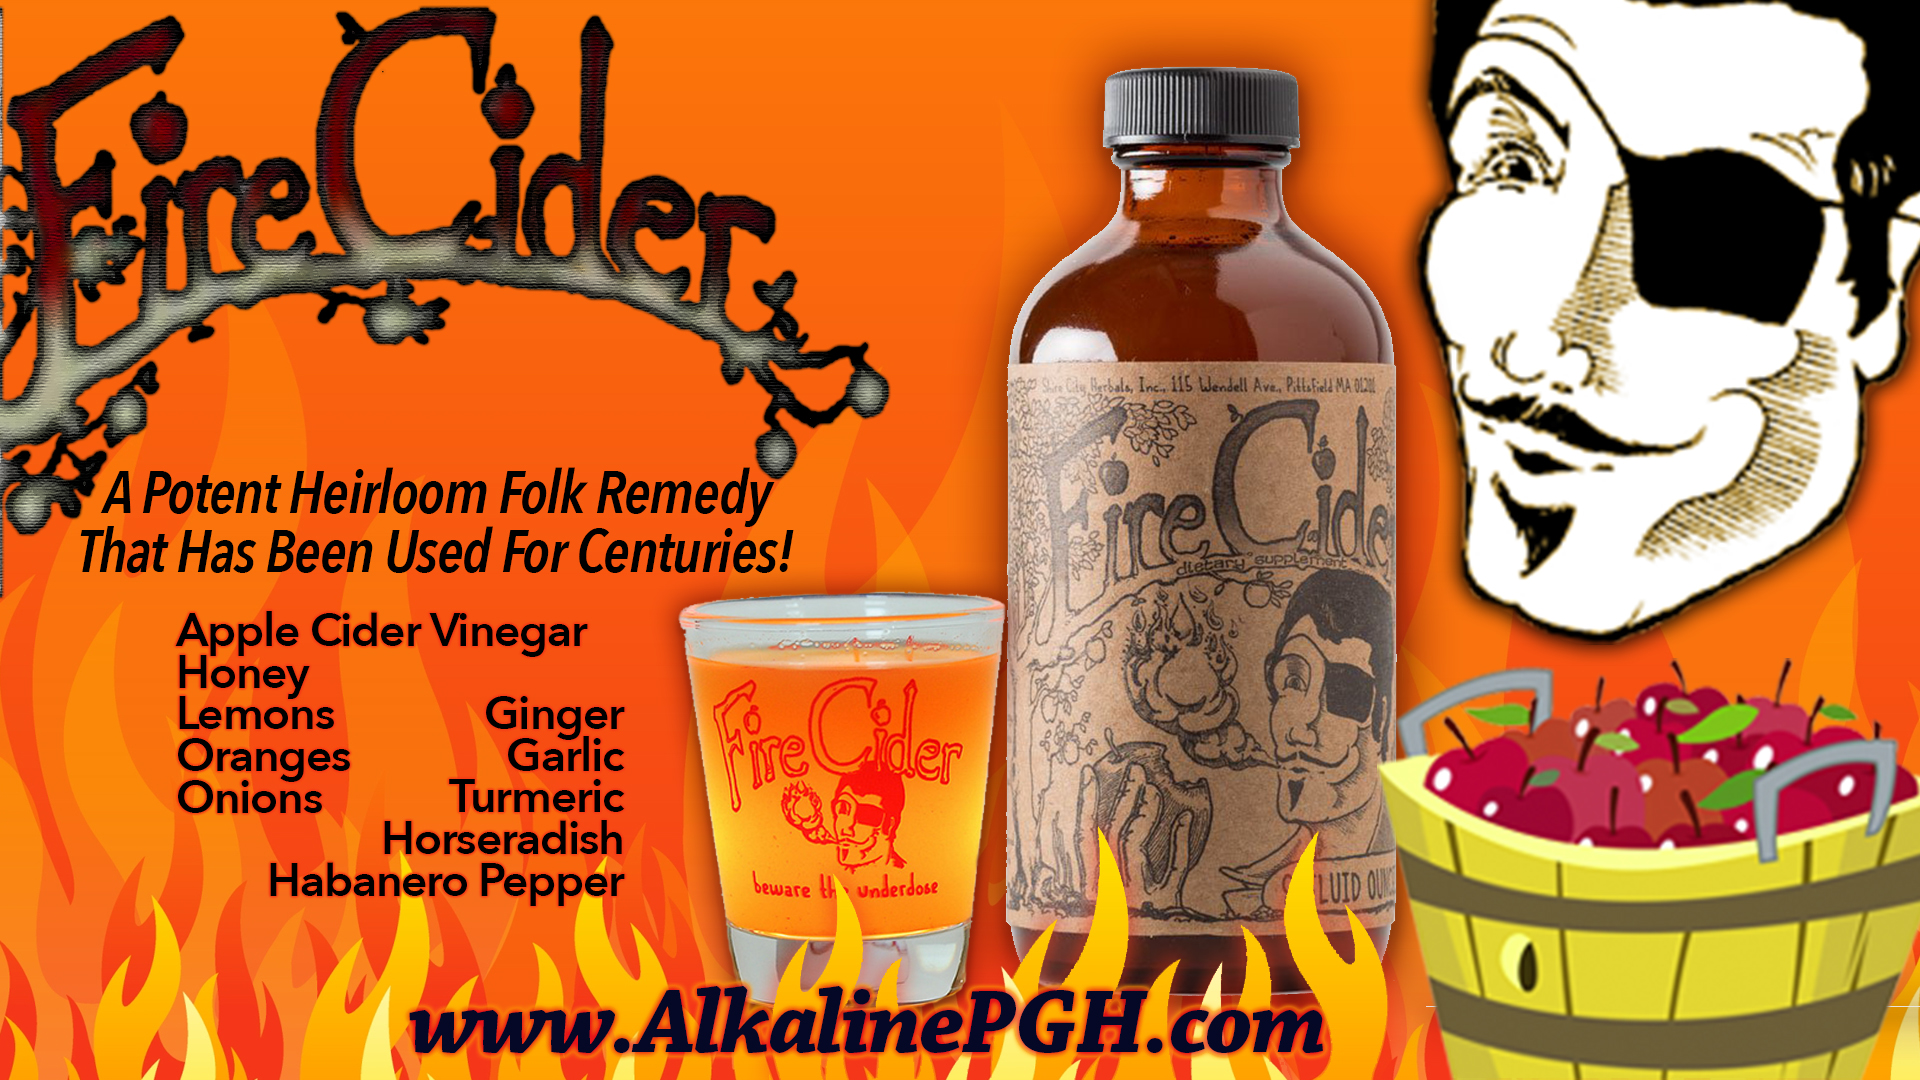 Fire Cider Organic Health Remedy